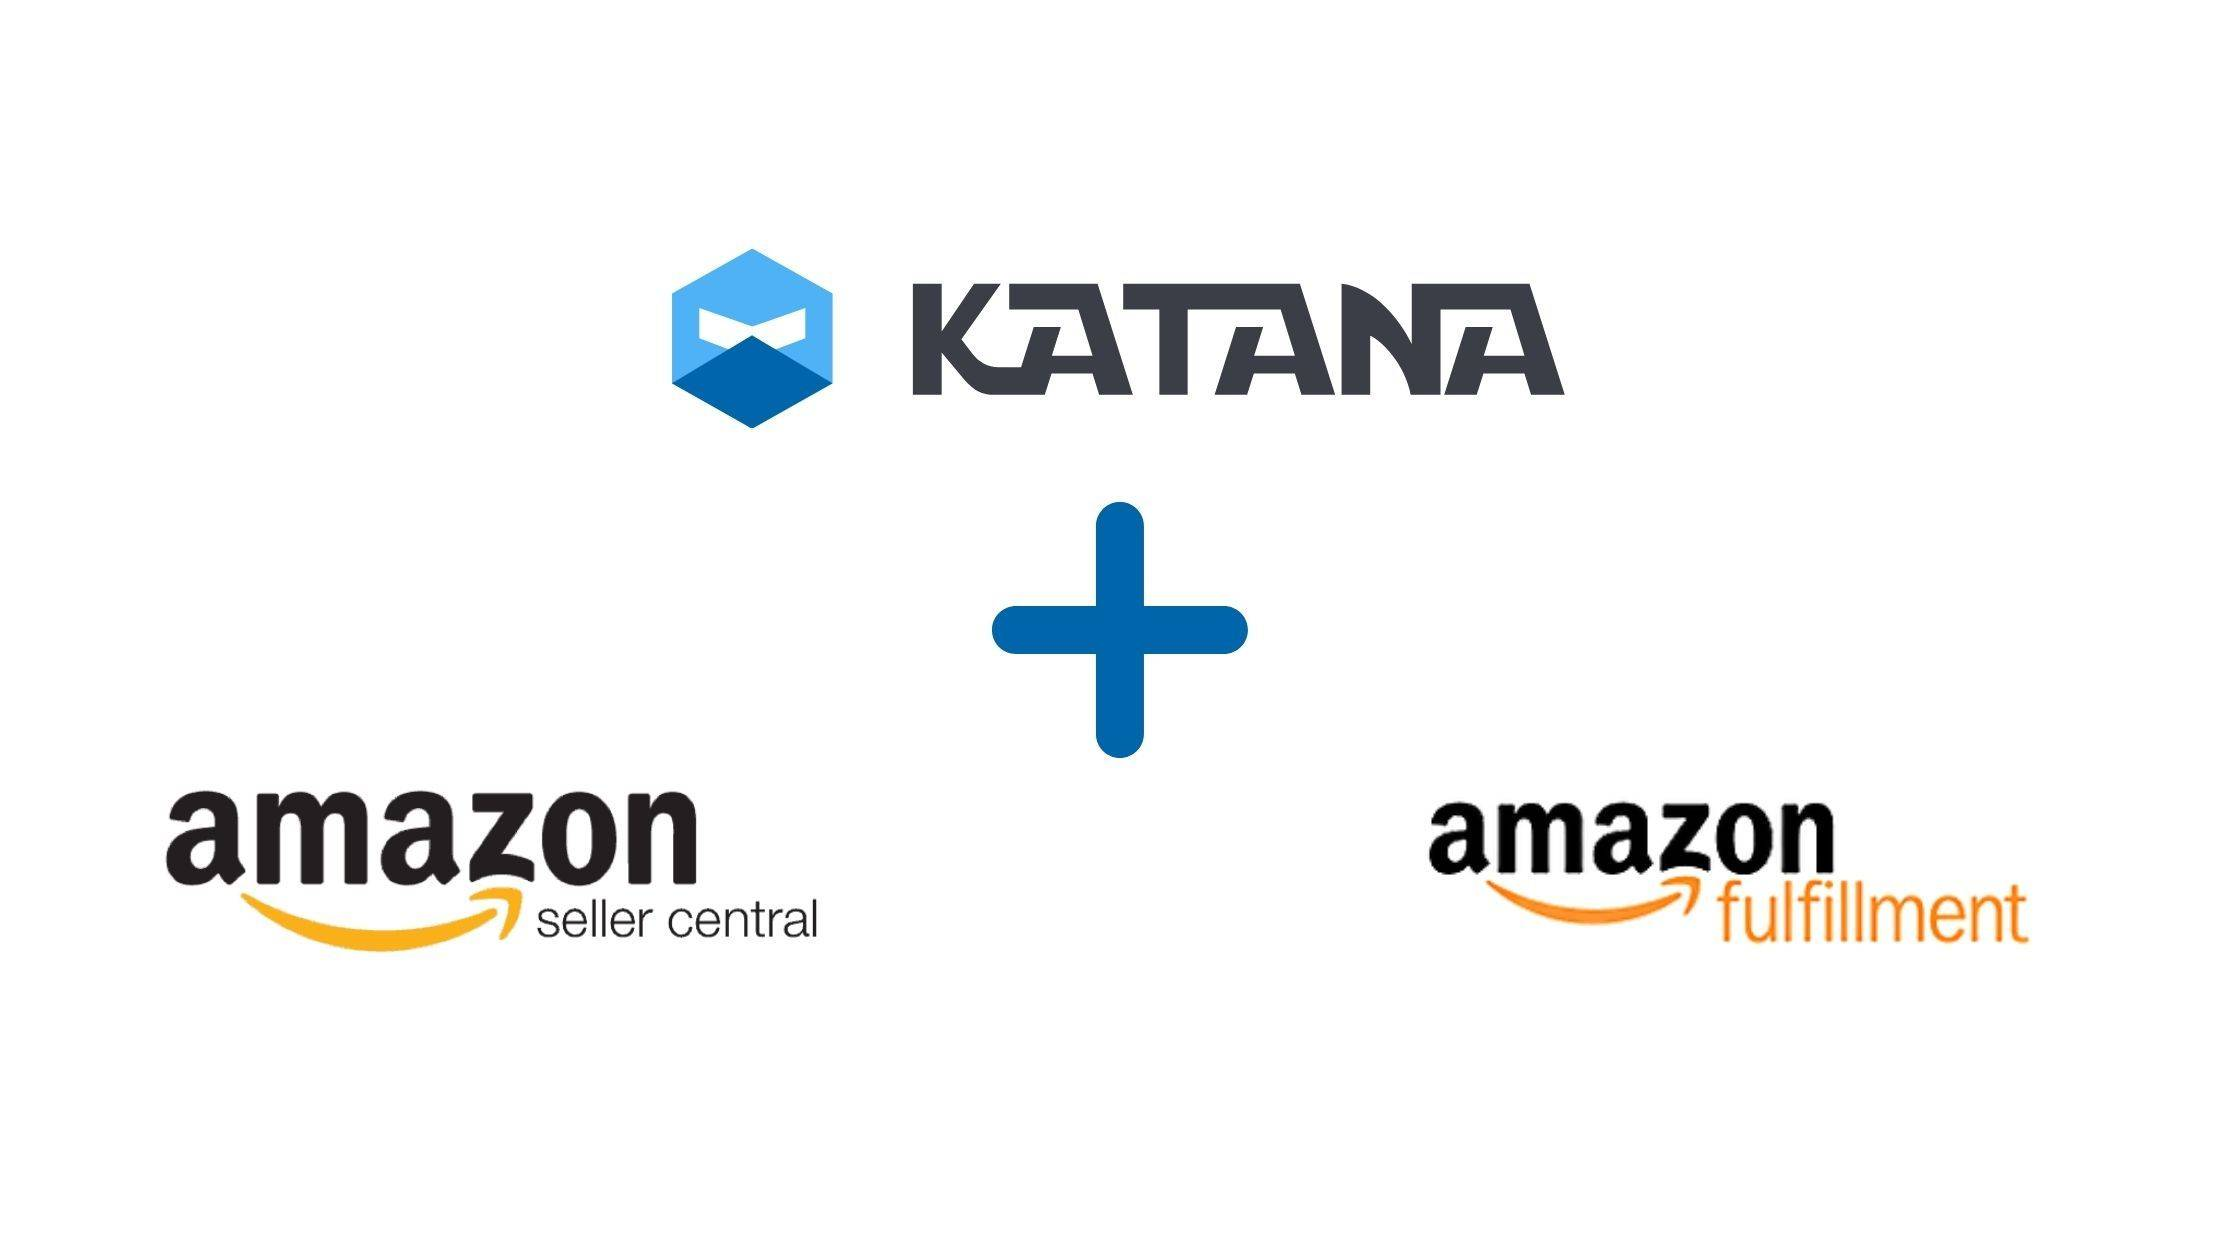 Katana x Amazon integration gives users the power of automation in a matter of minutes.